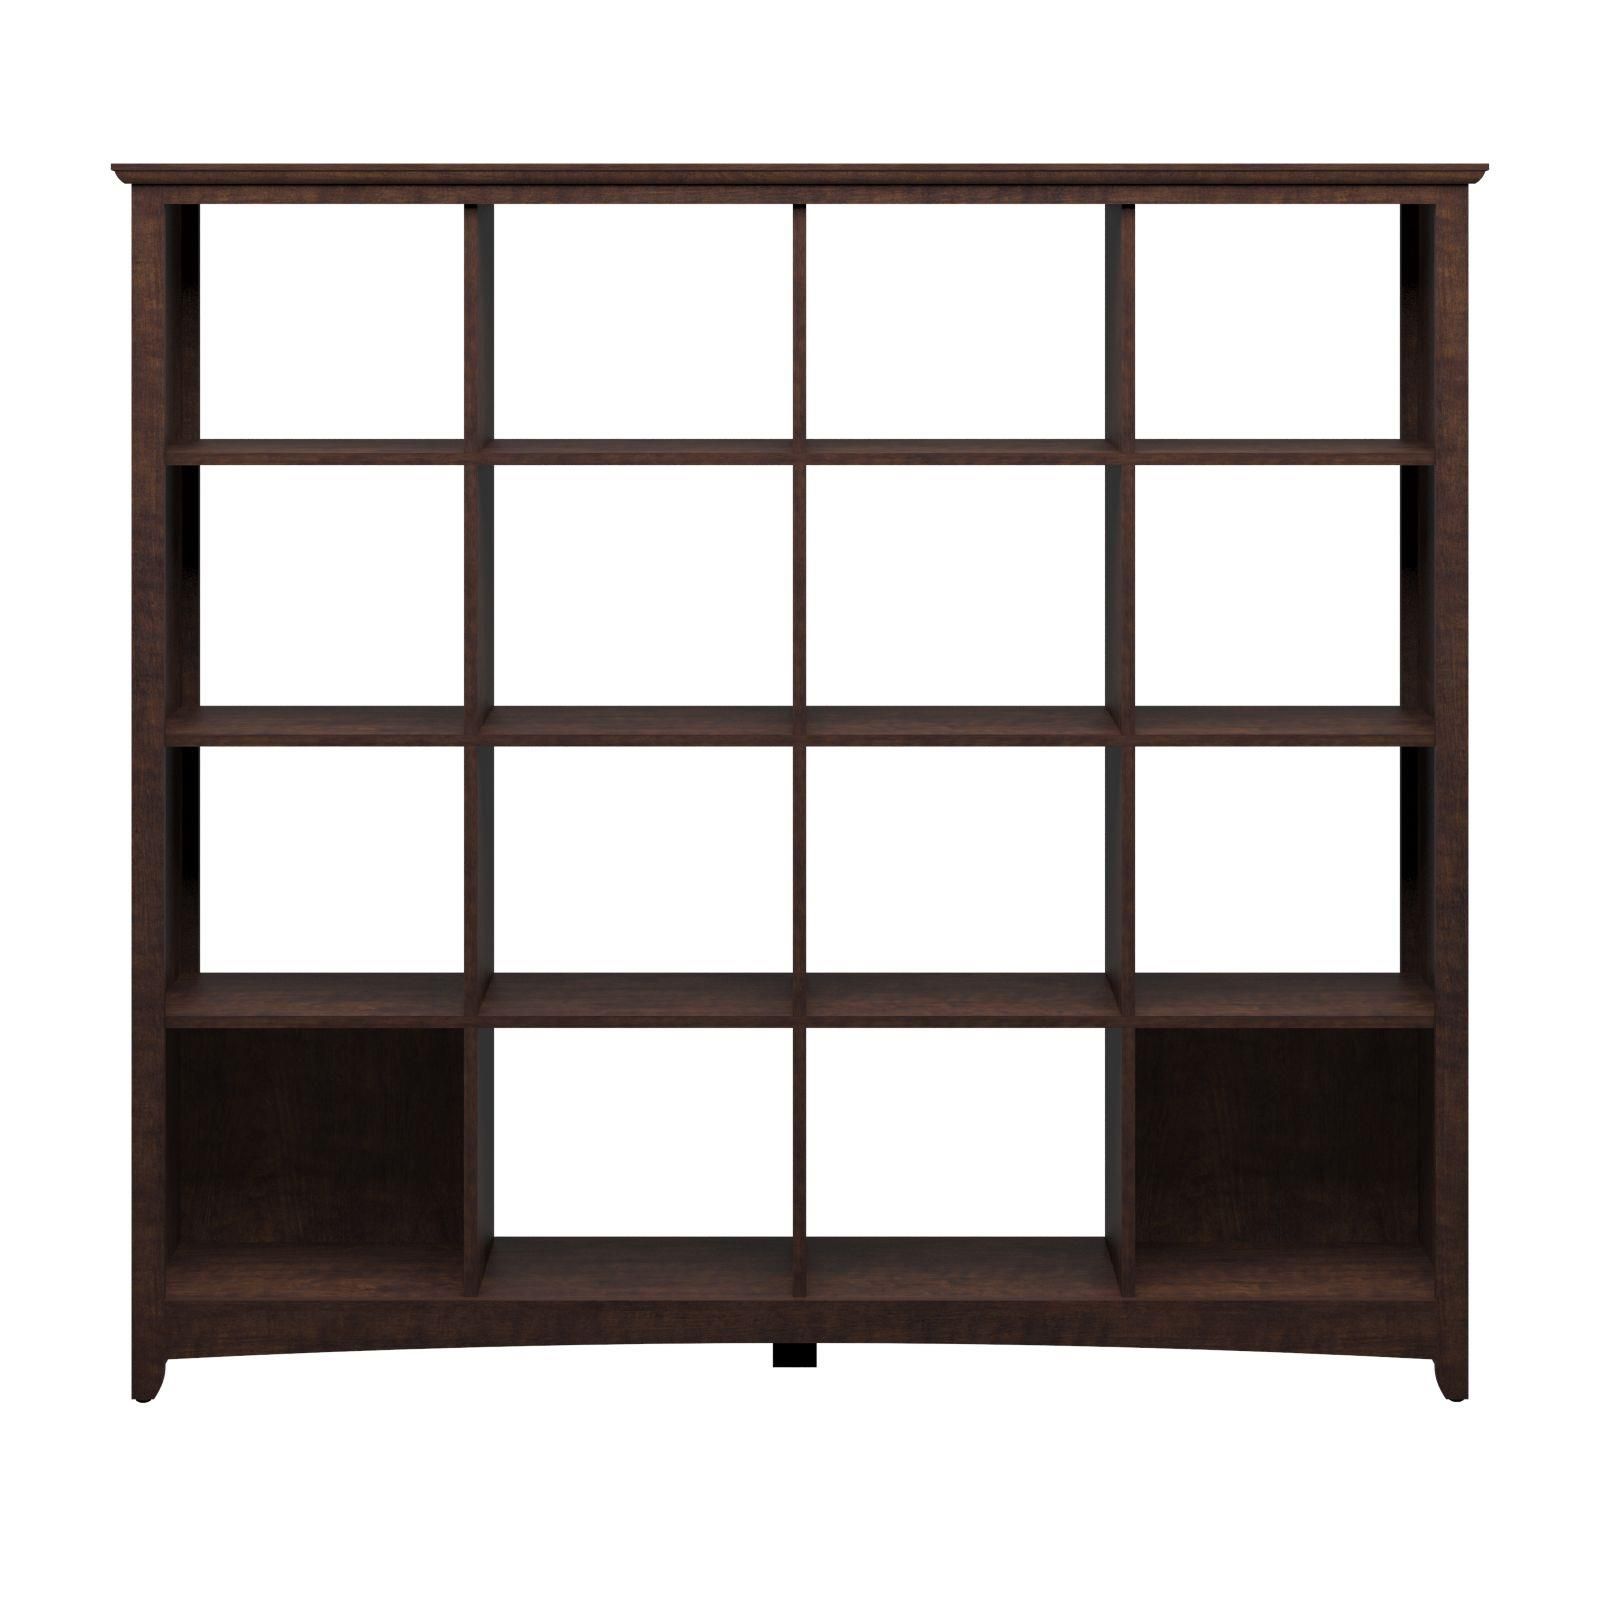 Bush furniture buena vista 16 cube bookcase room divider by oj commerce my13803 03 - Bookshelves as room divider ...